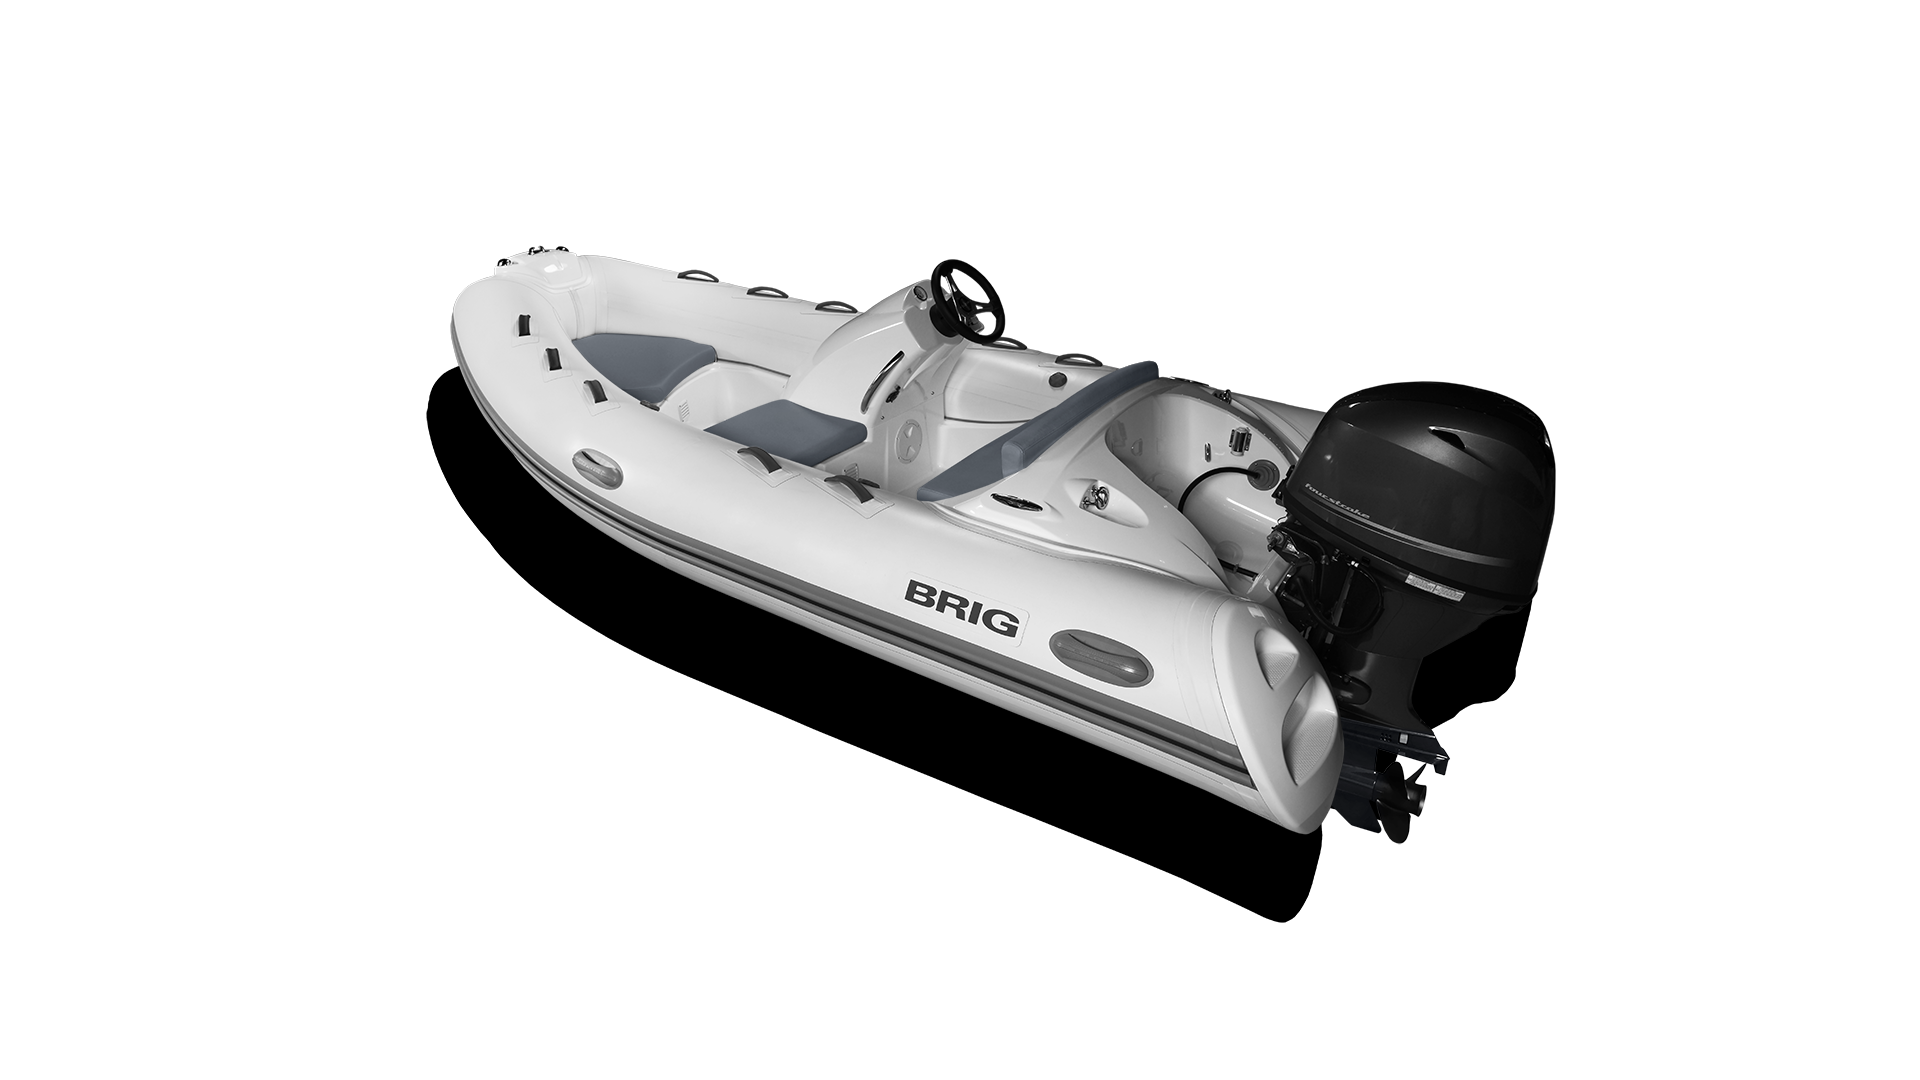 Eagle 380 Rigid Inflatable Boat